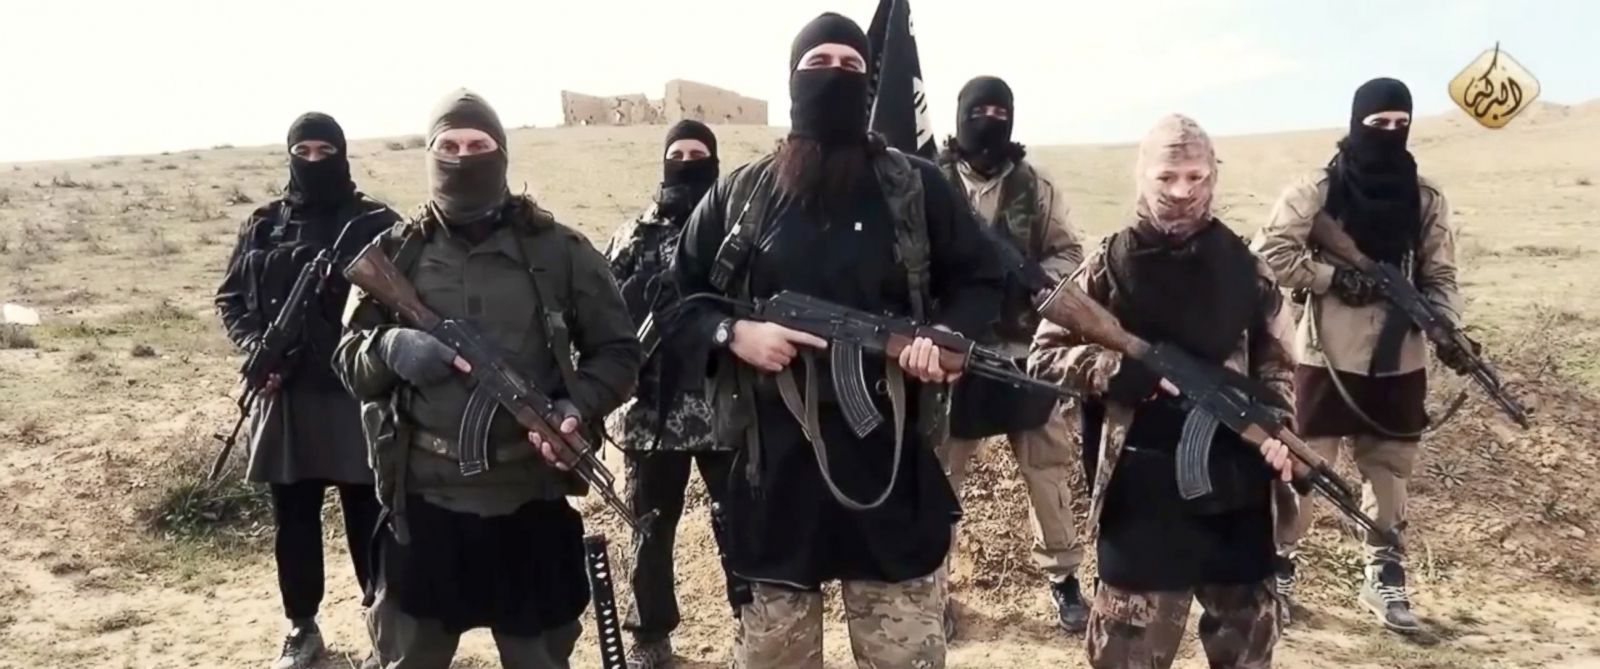 PHOTO: ISIS fighters deliver a message to Francois Hollande and to the French people on Feb. 4th, 2015.